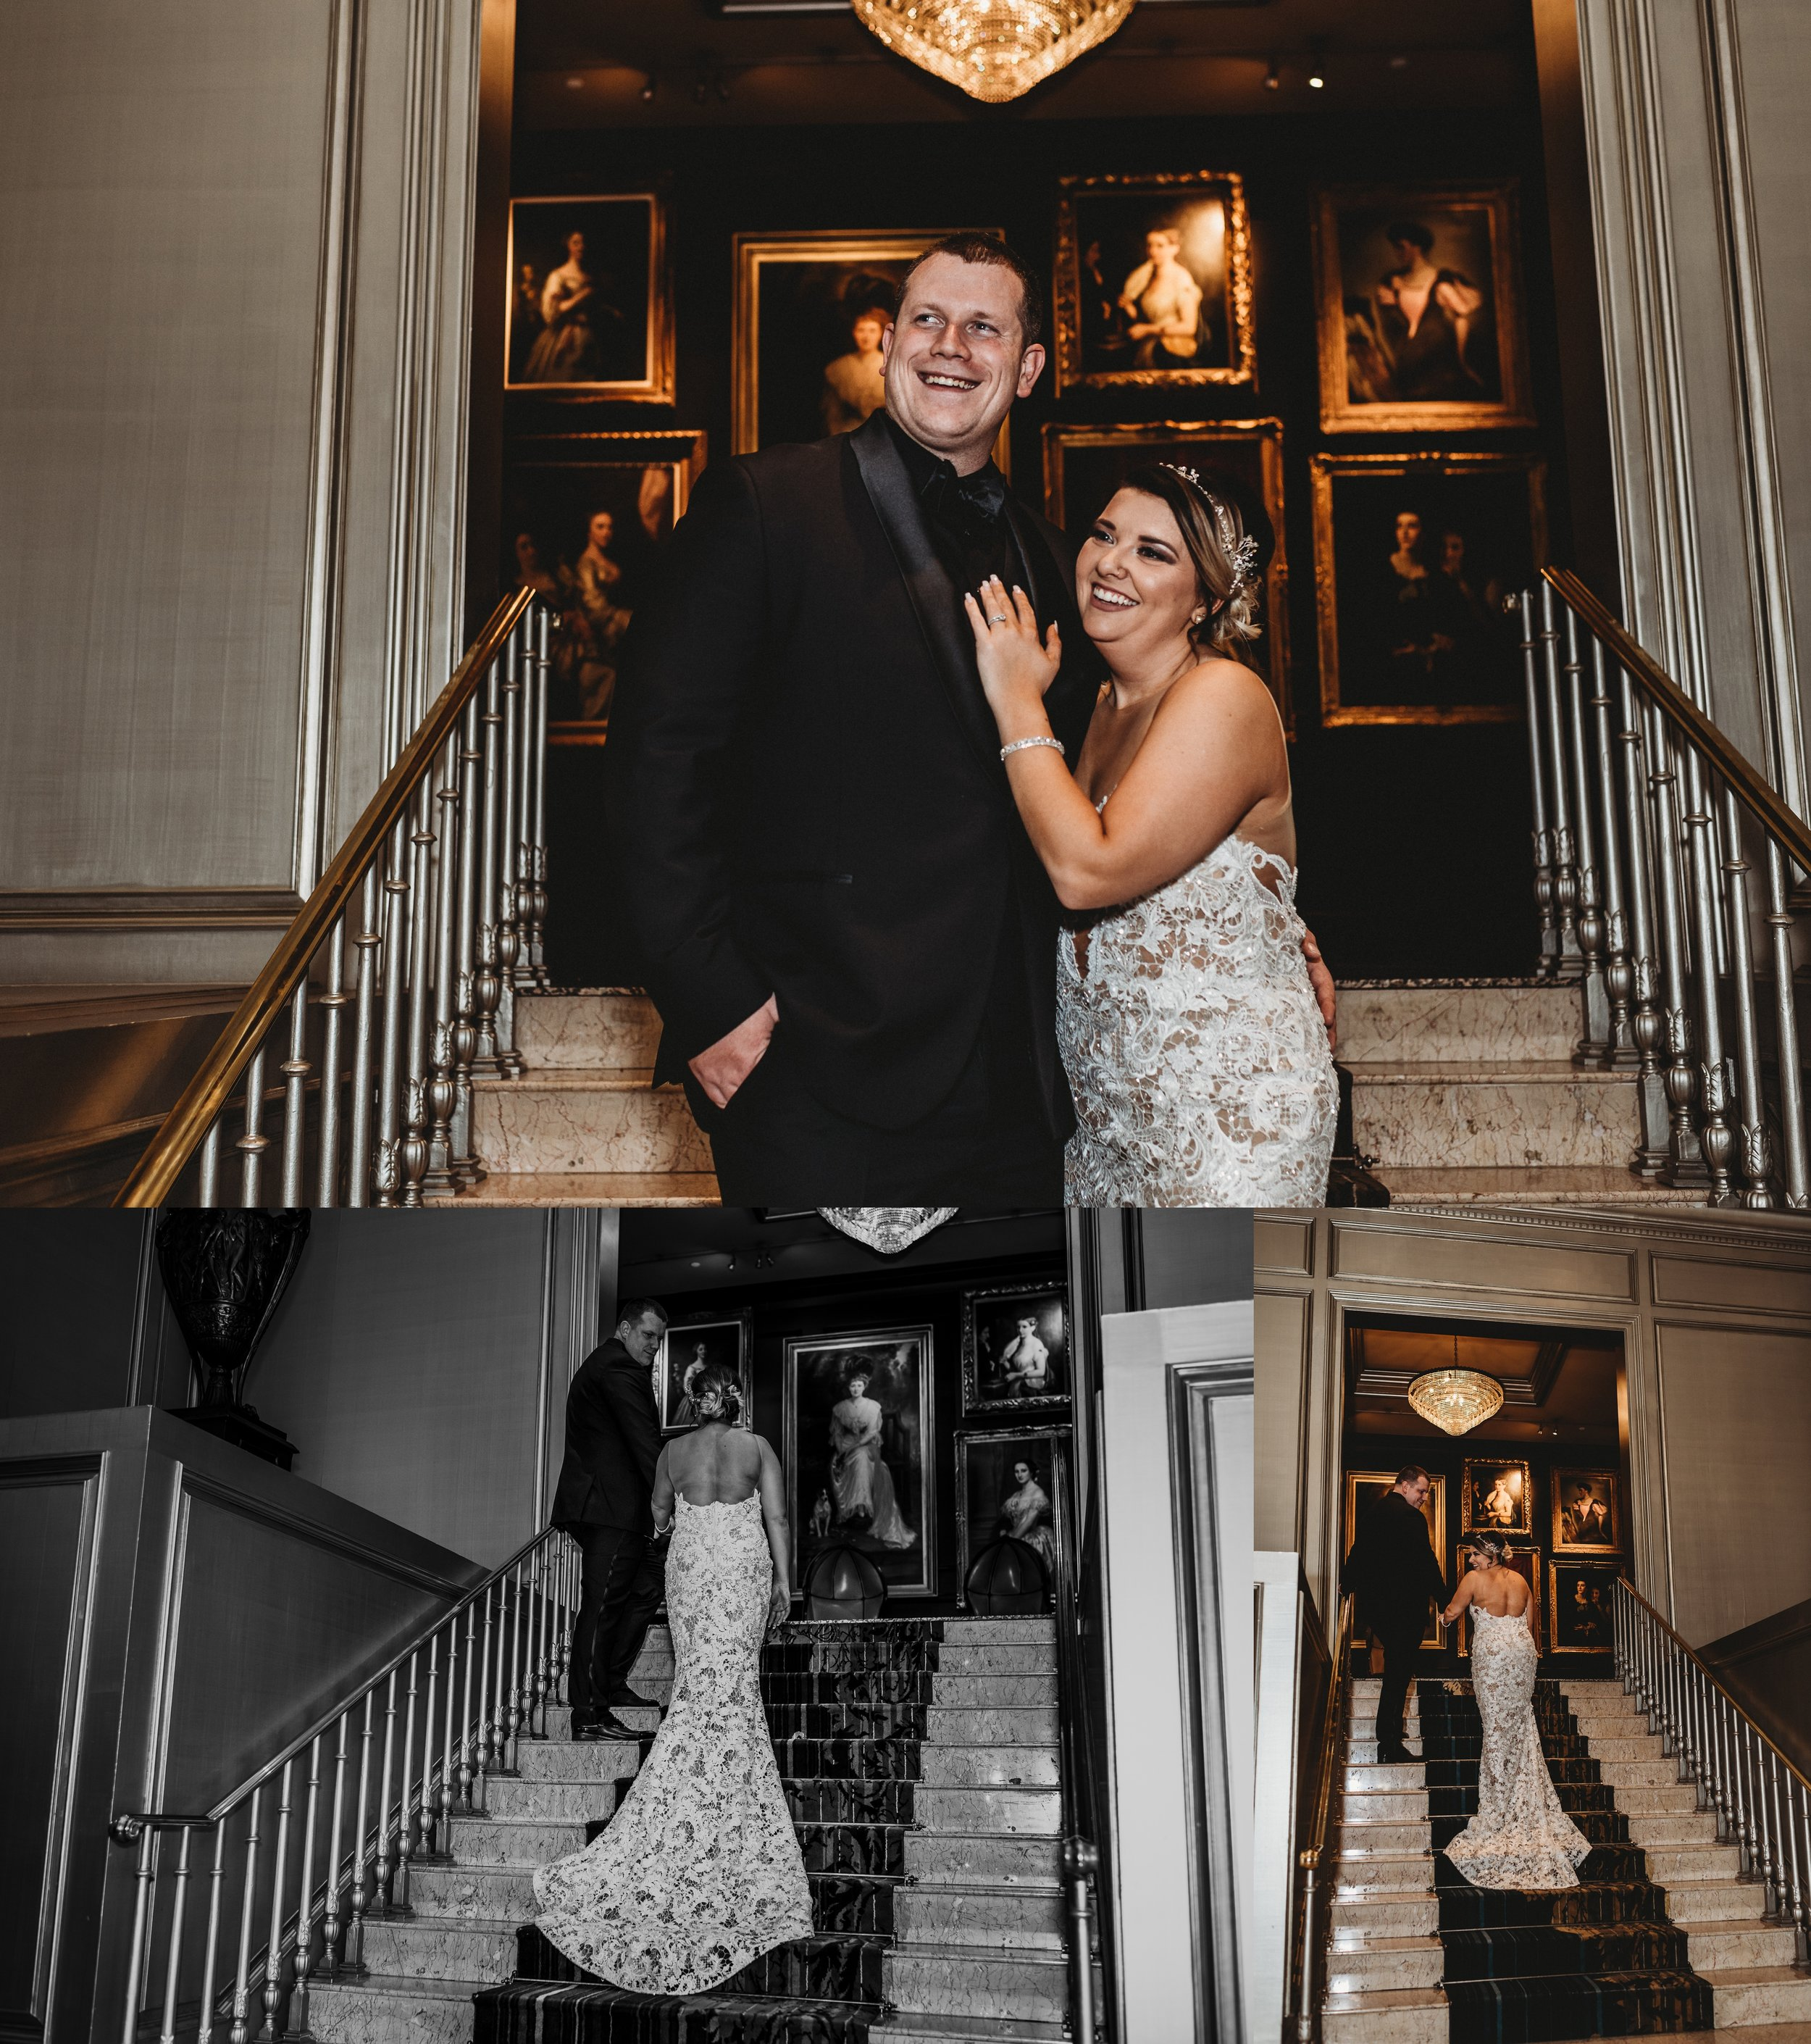 Classic Vintage Wedding | Ritz Carlton Atlanta, Georgia | Terry Farms Photography | Bride & Groom